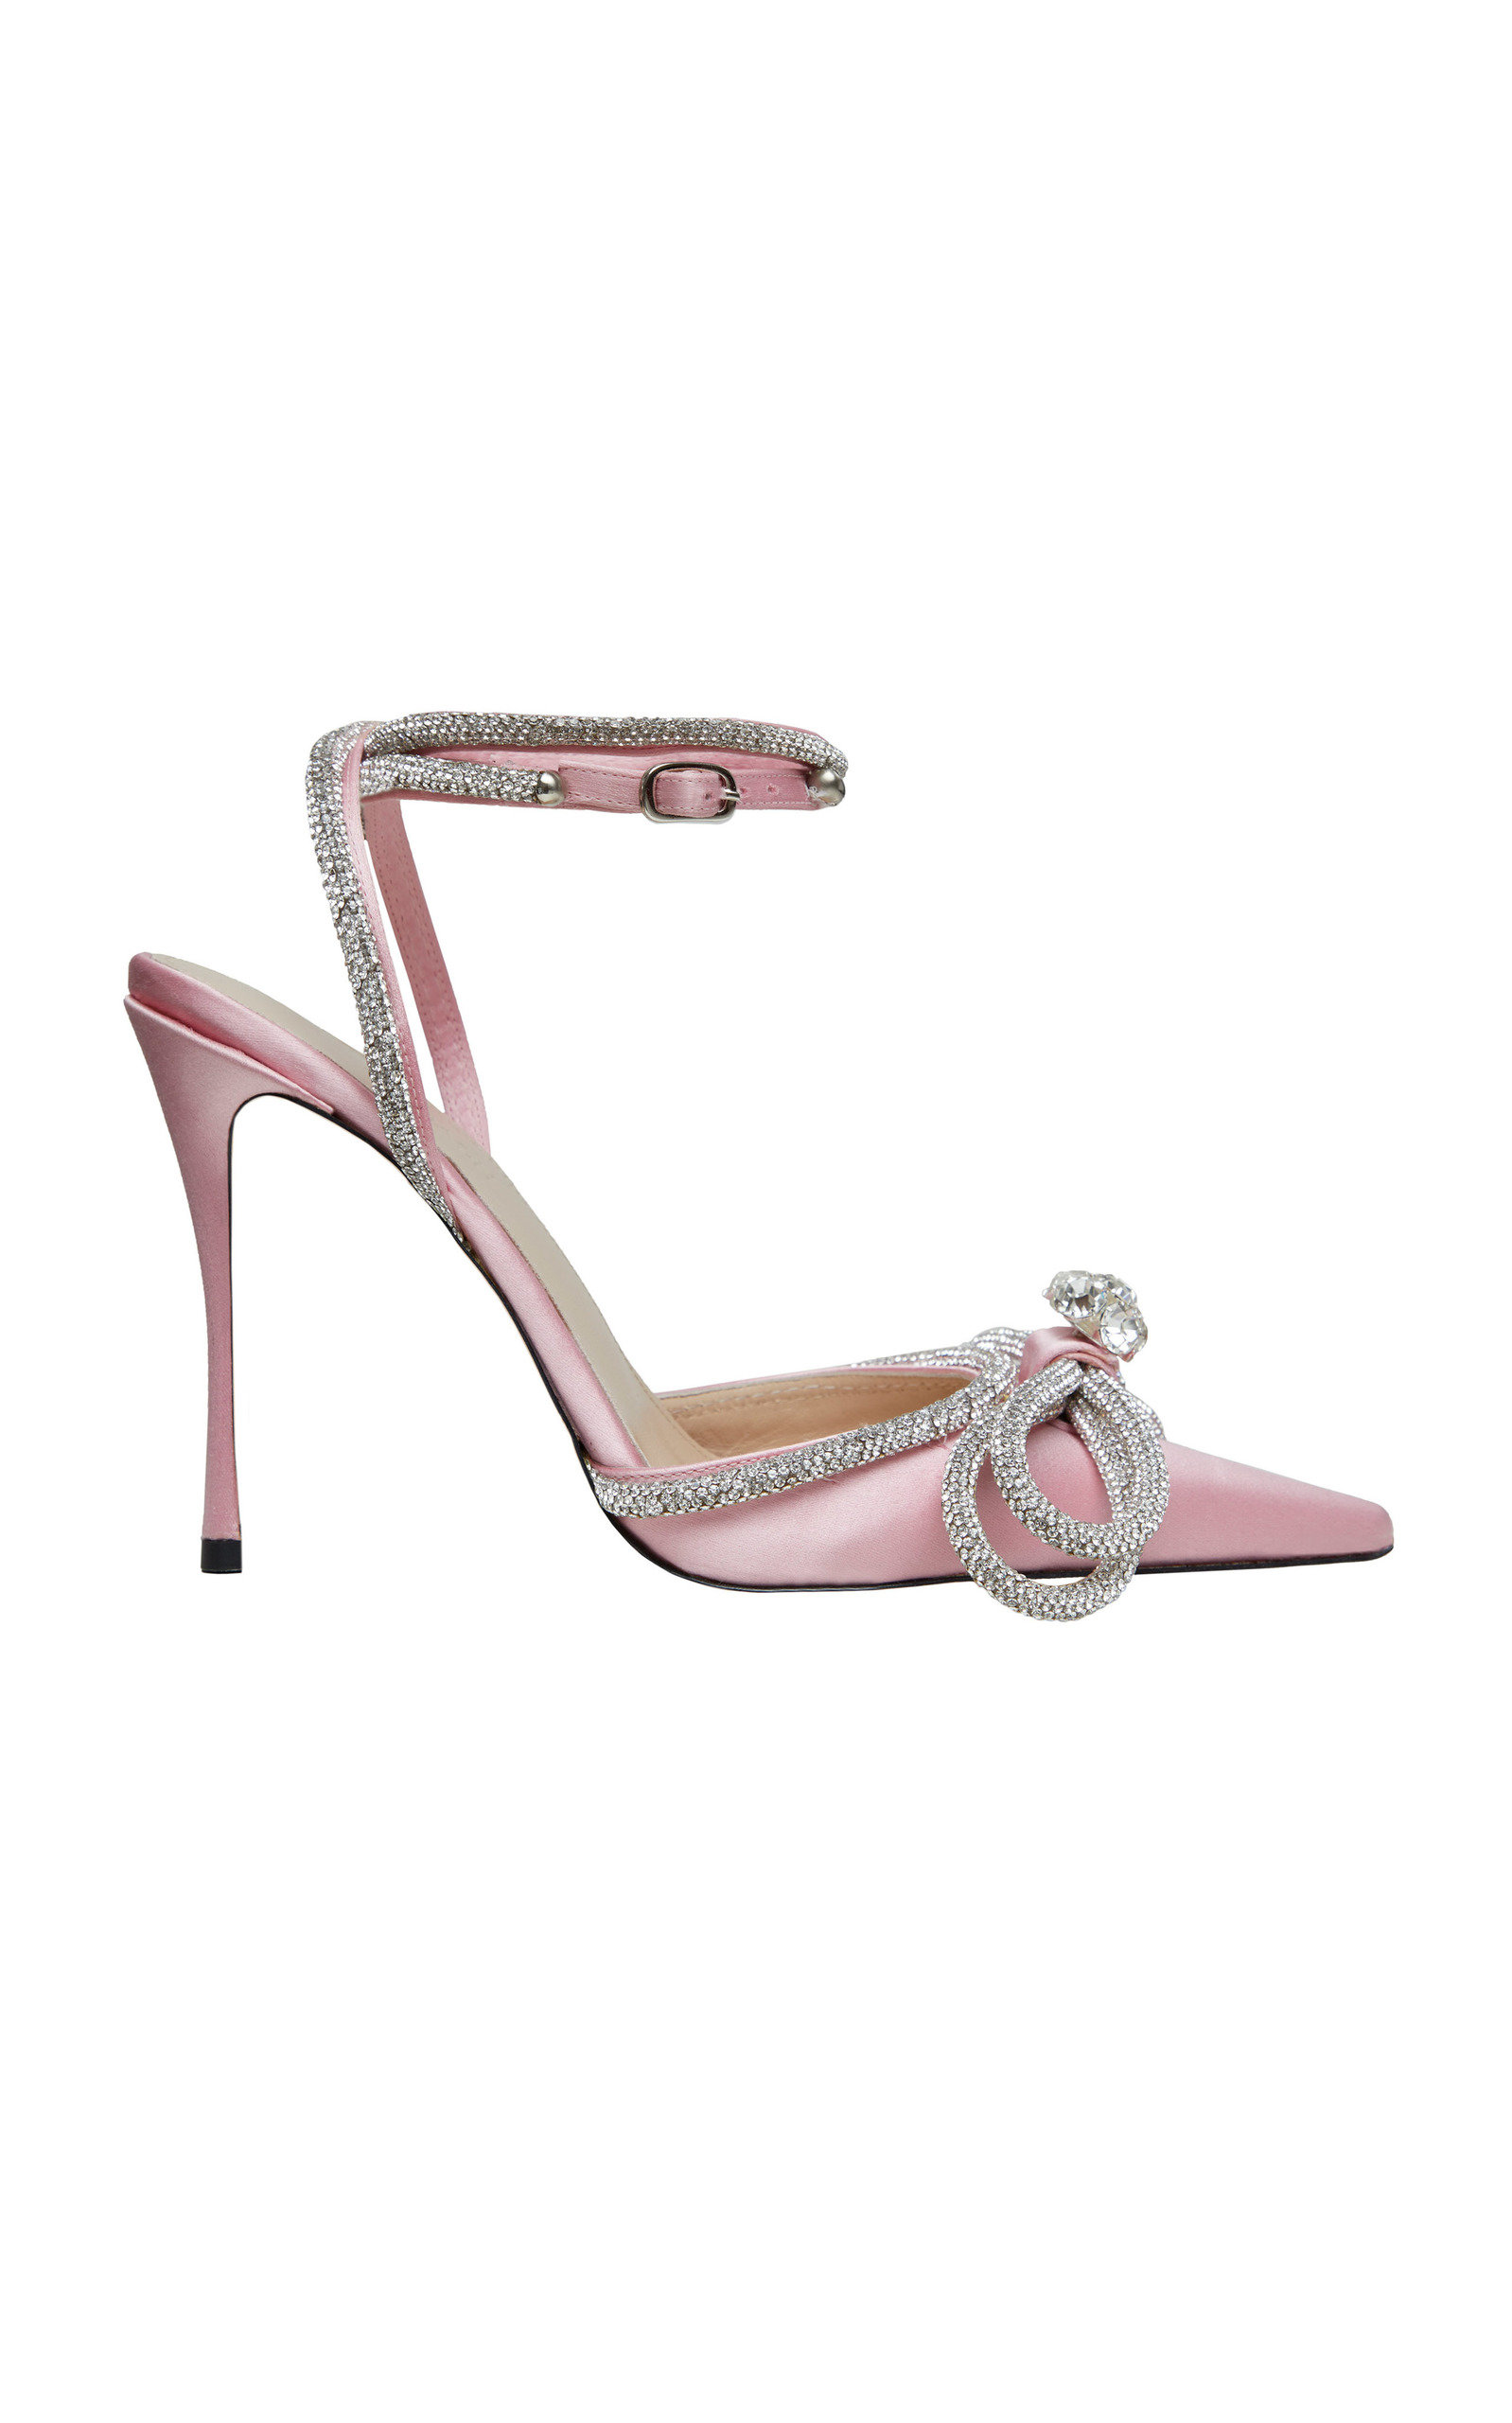 Women's Double Bow Crystal-Embellished Satin Pumps